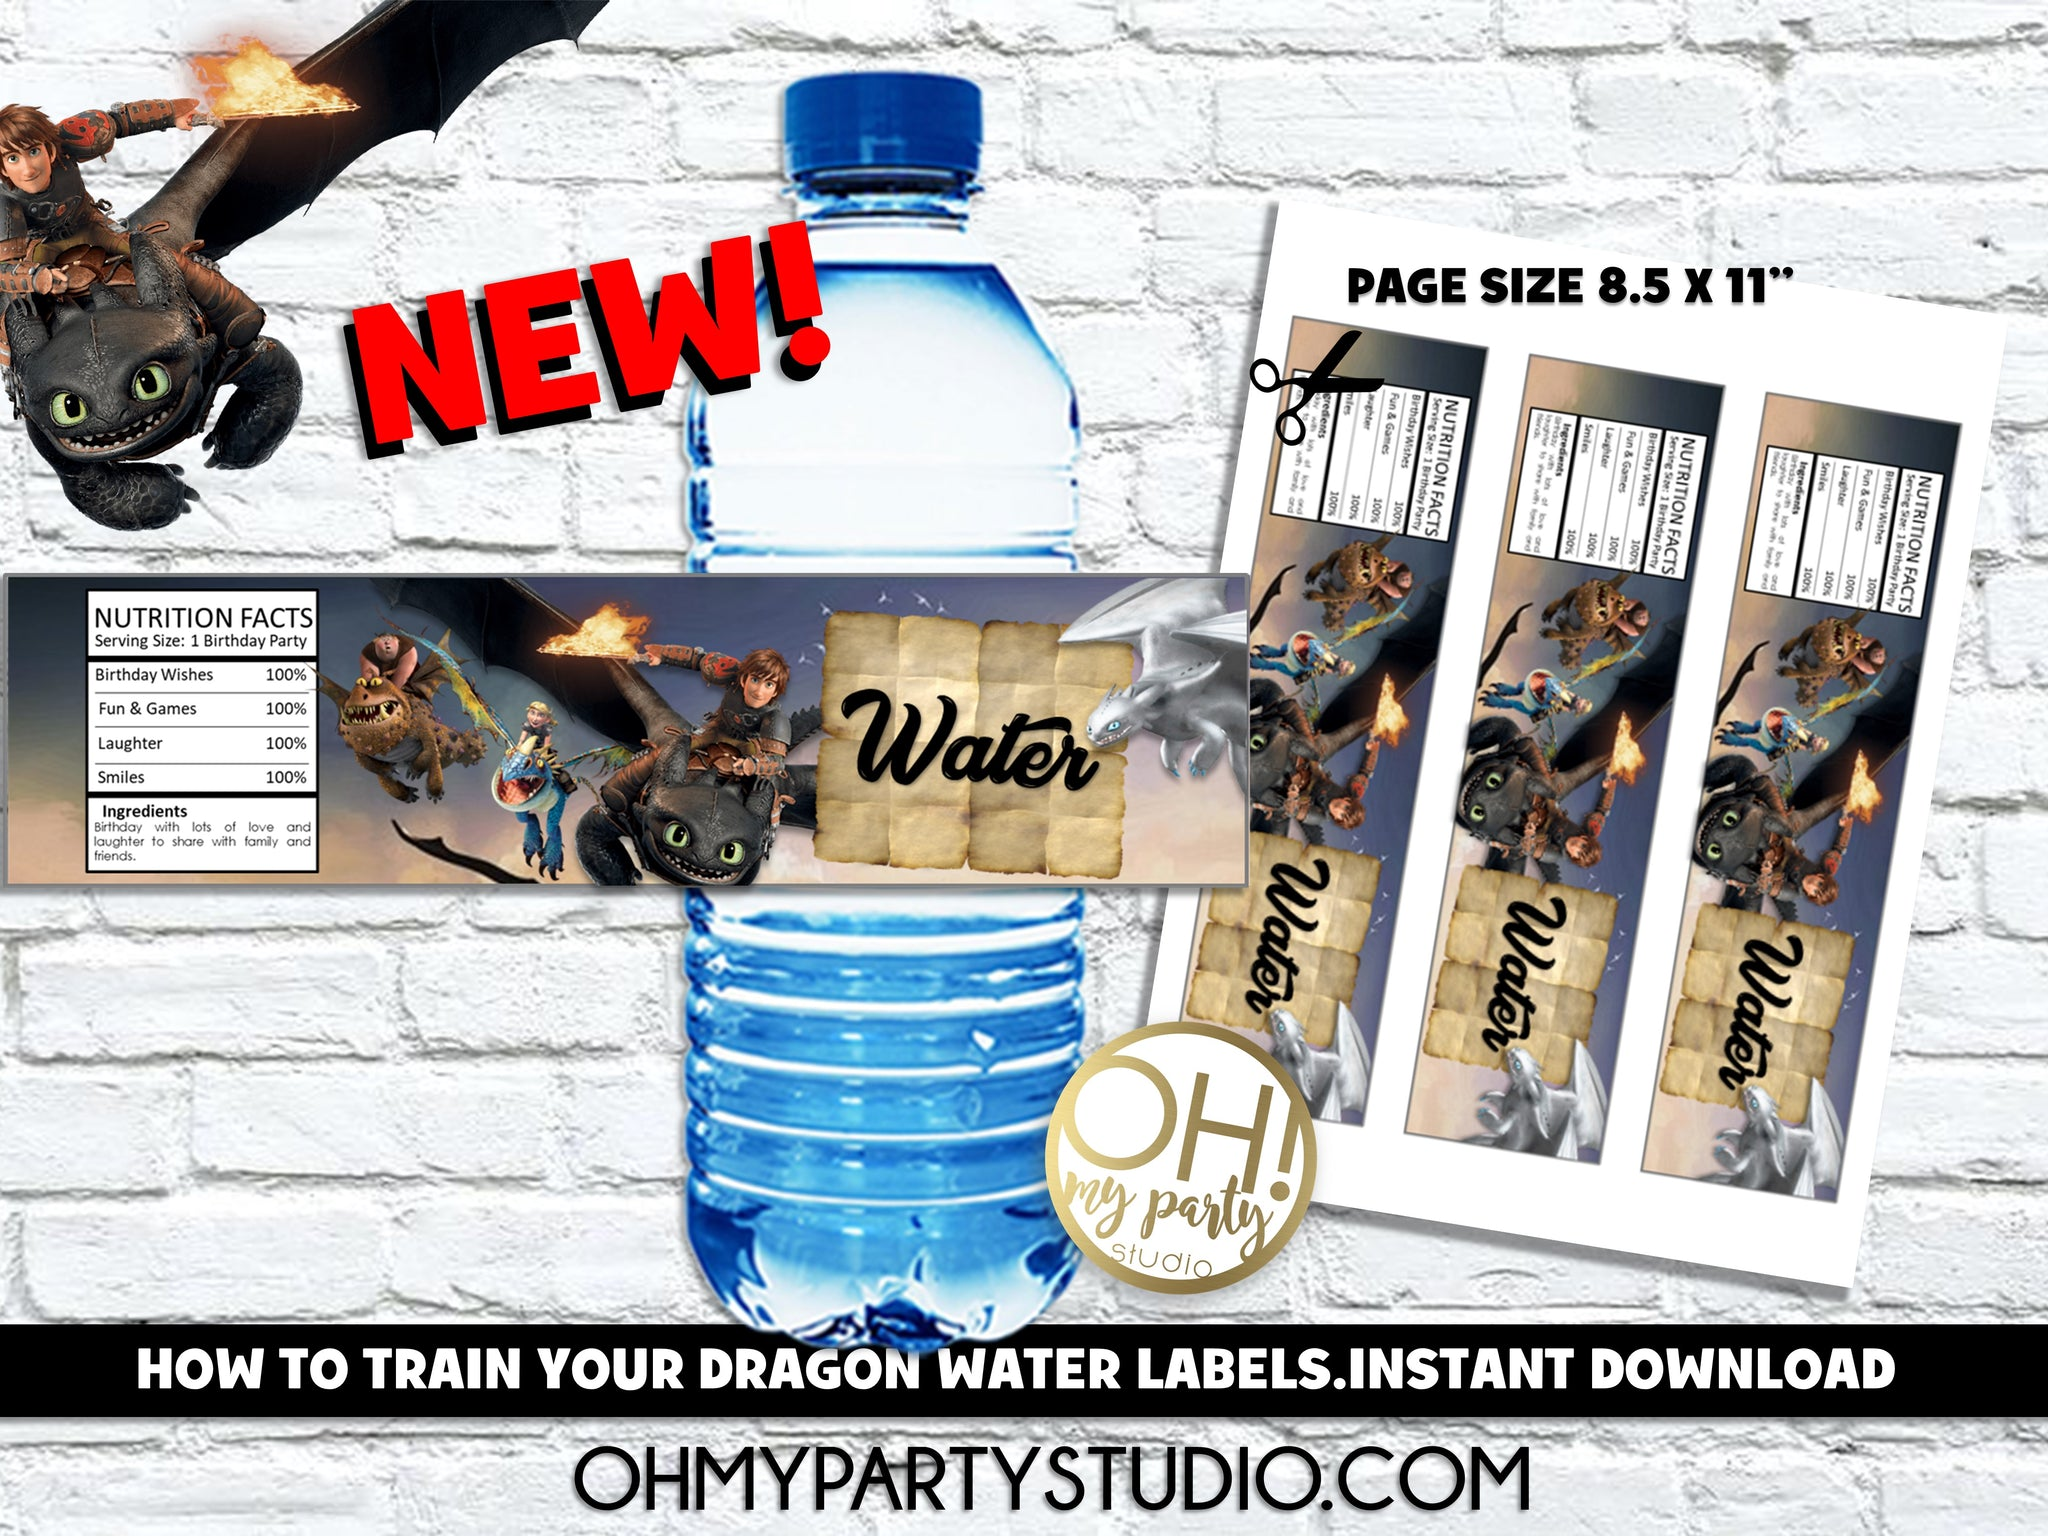 HOW TO TRAIN YOUR DRAGON WATER LABELS, HOW TO TRAIN YOUR DRAGON BIRTHDAY, HOW TO TRAIN YOUR DRAGON PARTY, HOW TO TRAIN YOUR DRAGON PRINTABLES, HOW TO TRAIN YOUR DRAGON BIRTHDAY PARTY